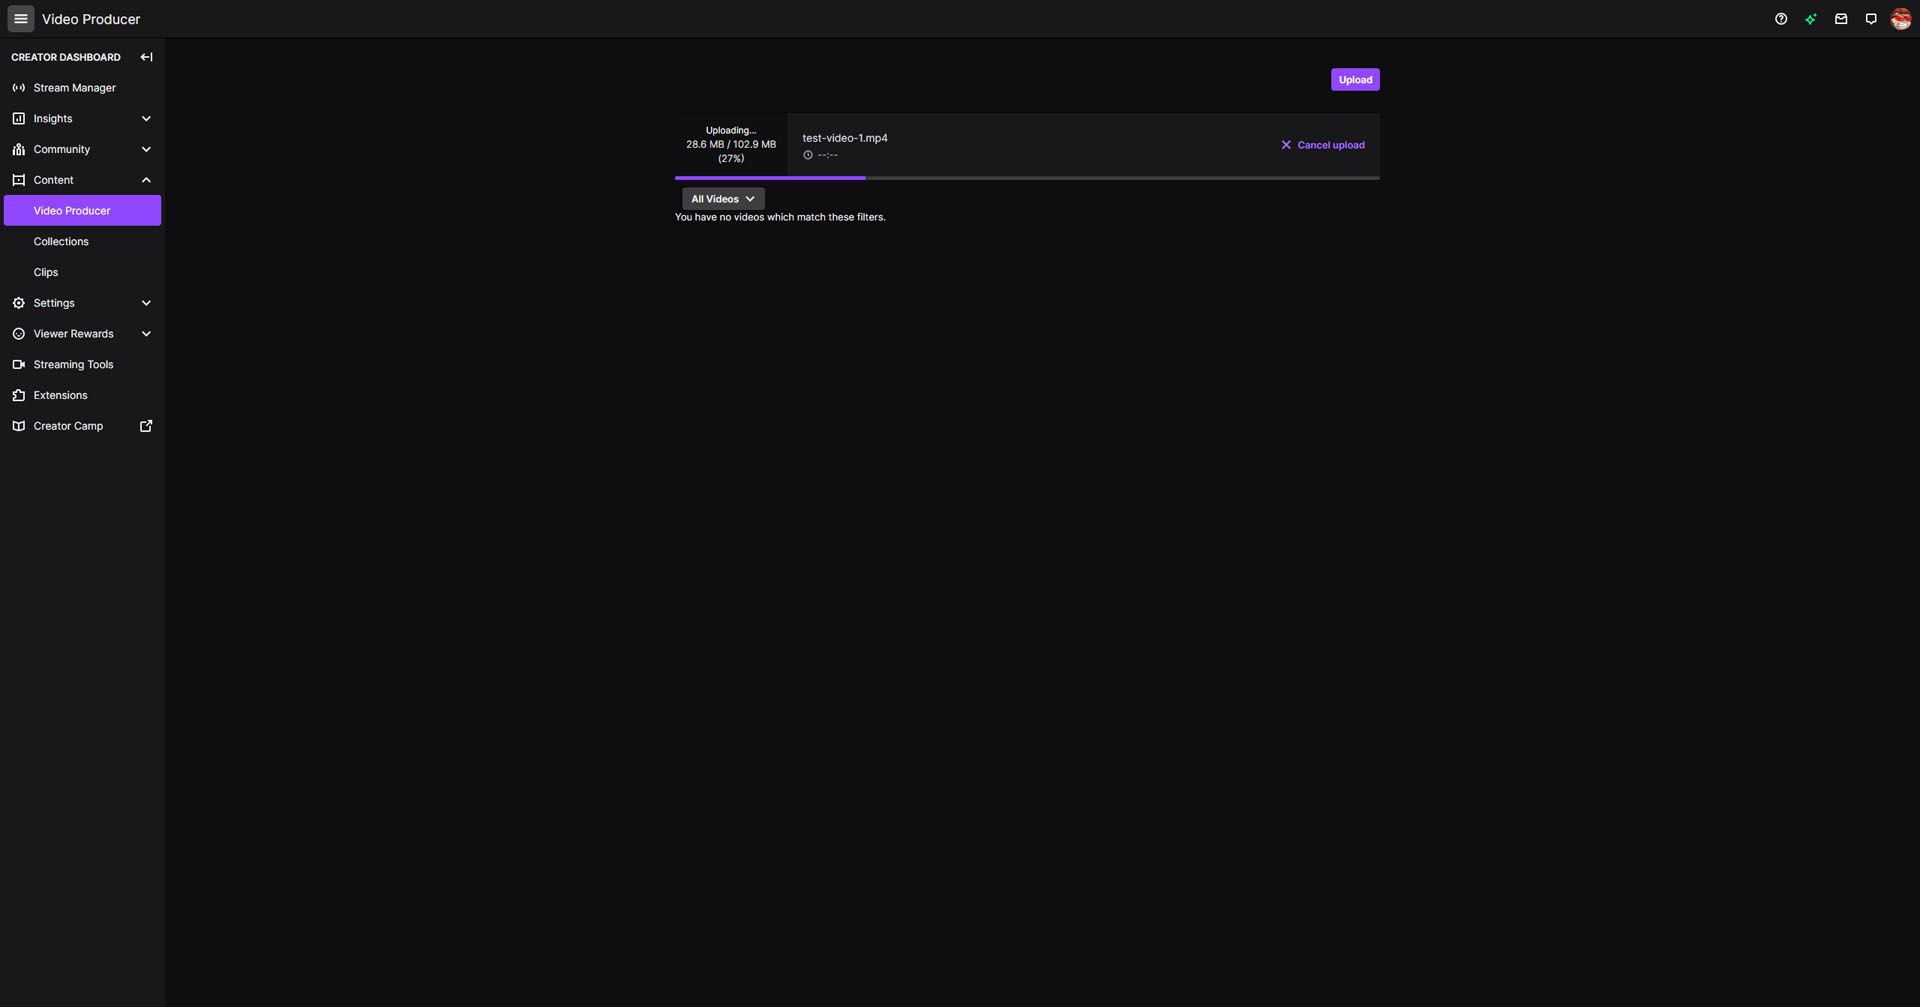 A screenshot of a video being uploaded to Twitch.